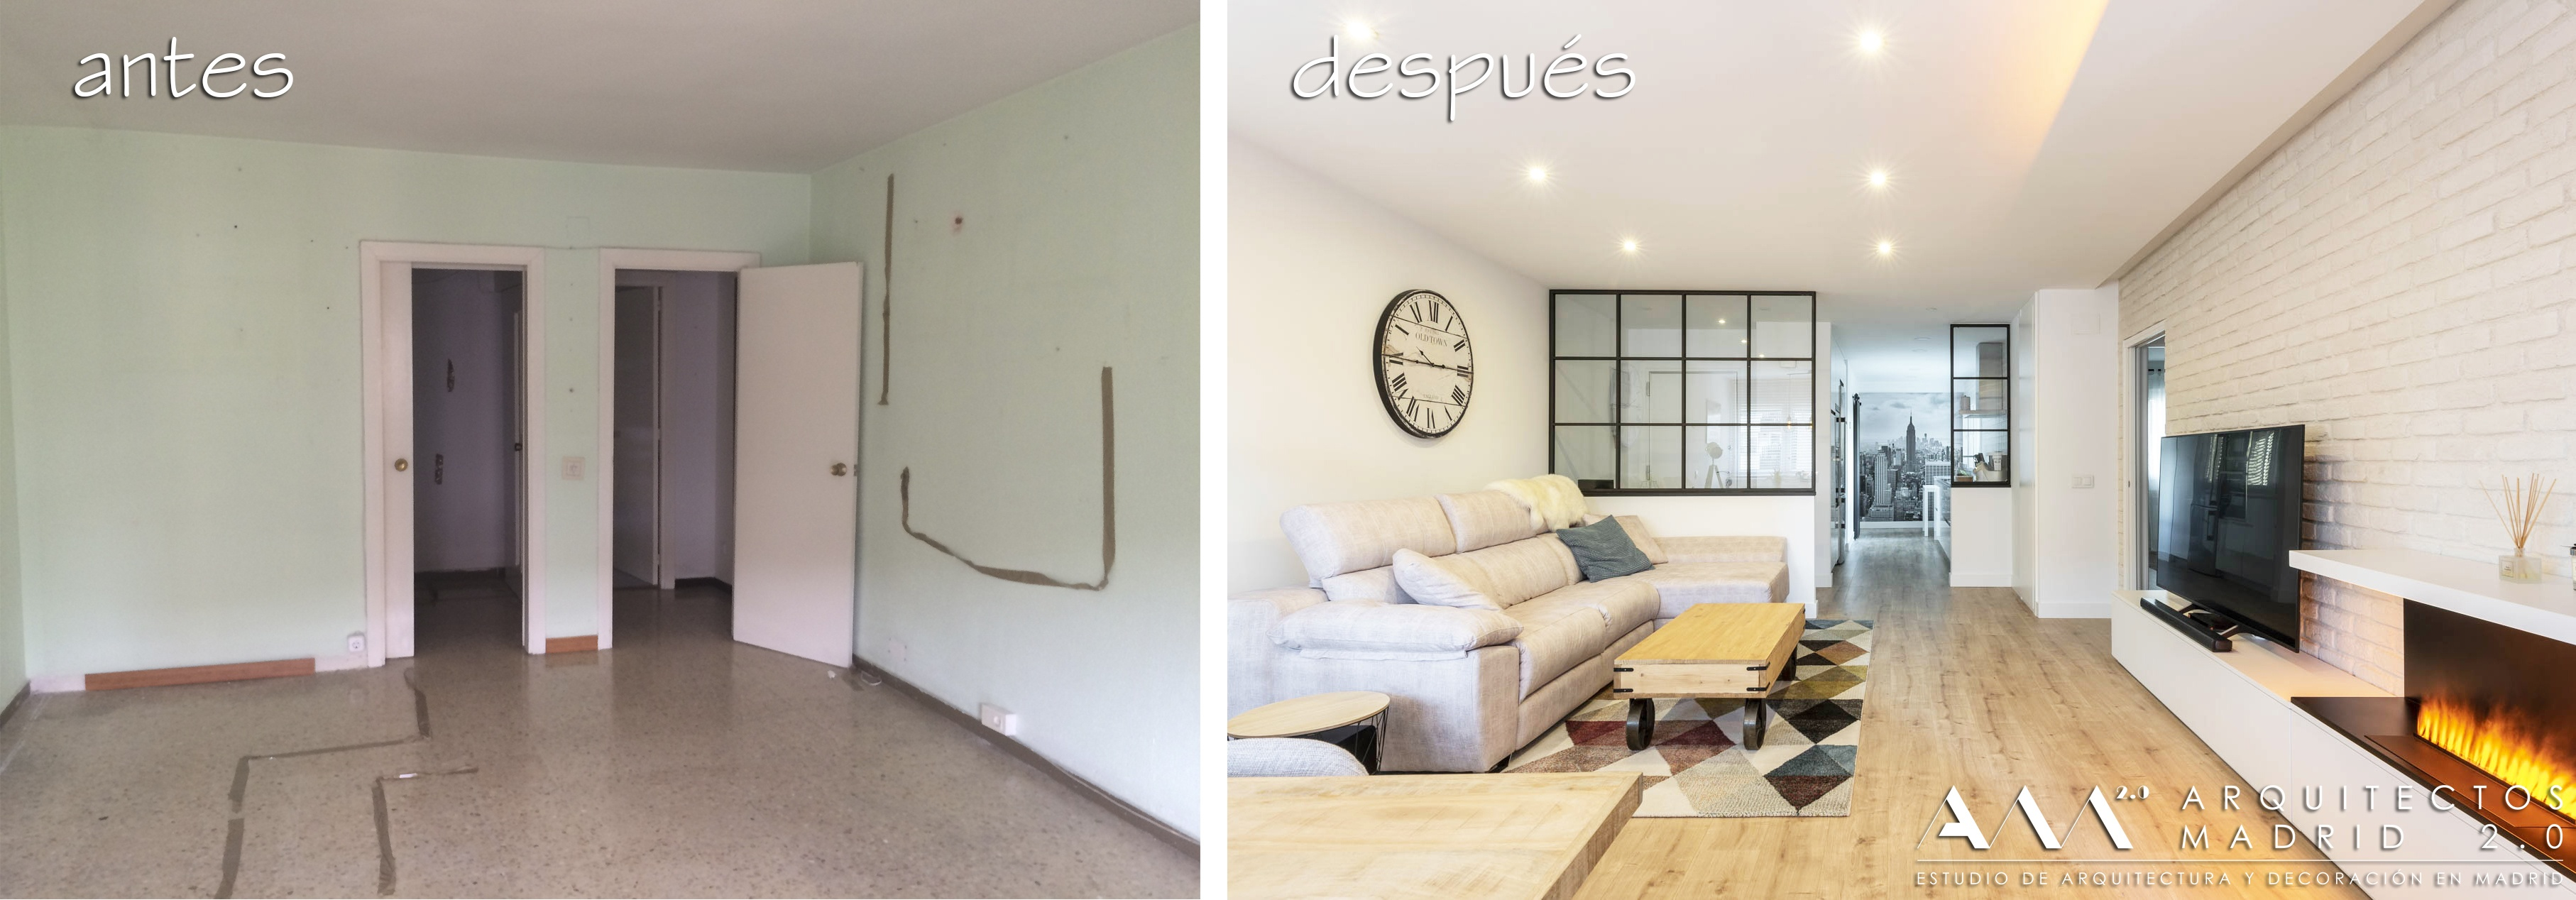 ayuda-compra-de-viviendas-antes-despues-sala-reforma-vivienda-housing-reform-before-after-living-room-design